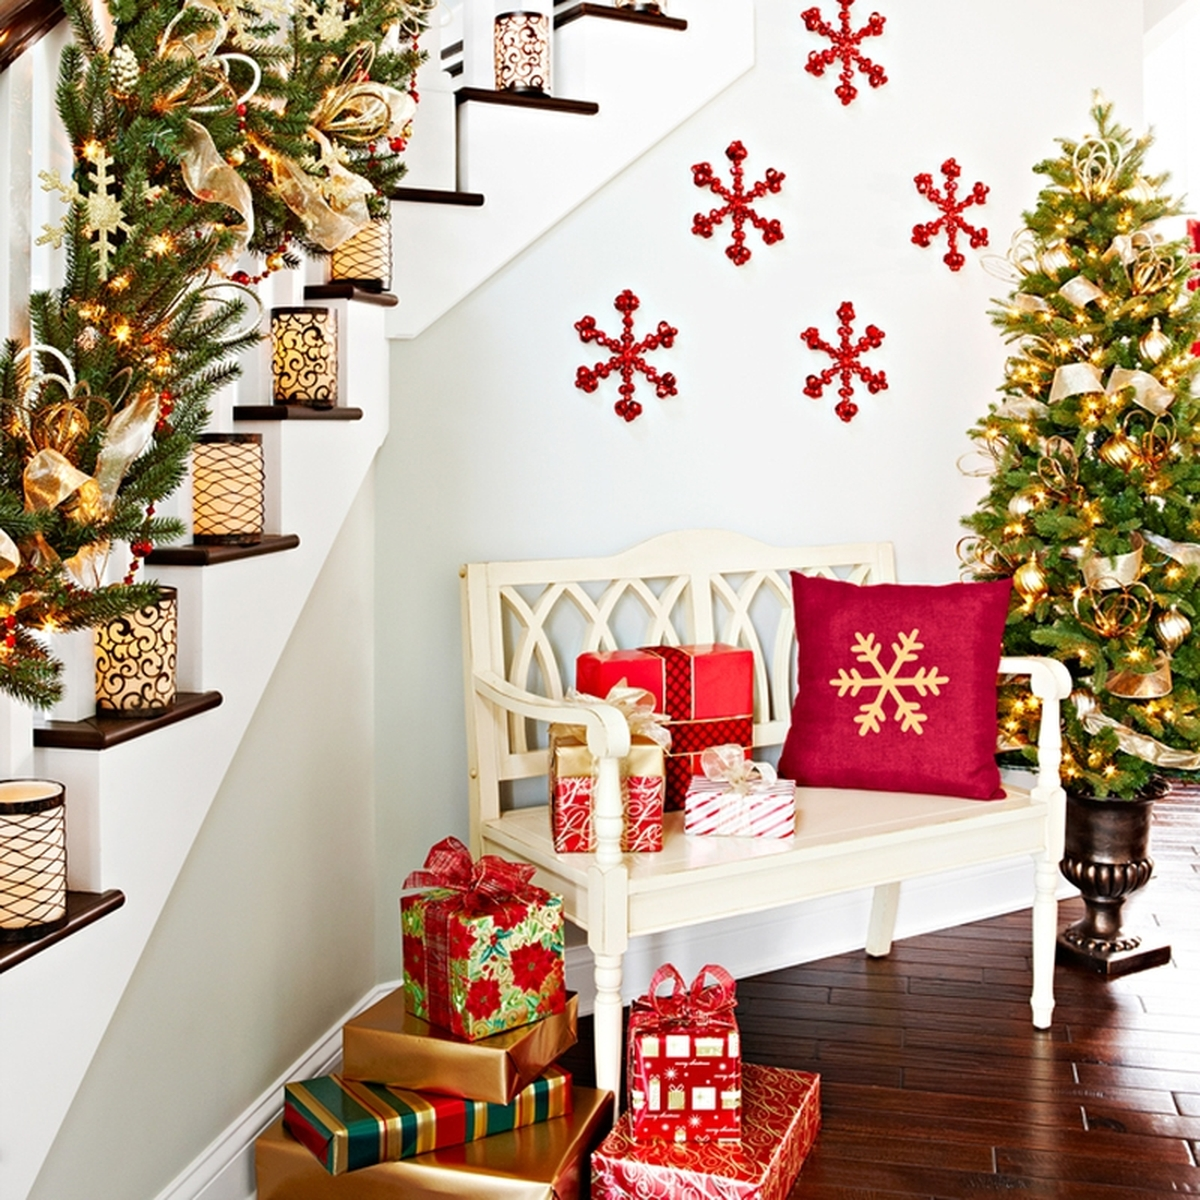 50 best indoor decoration ideas for christmas in 2019 - Adornos de navidad para el hogar ...